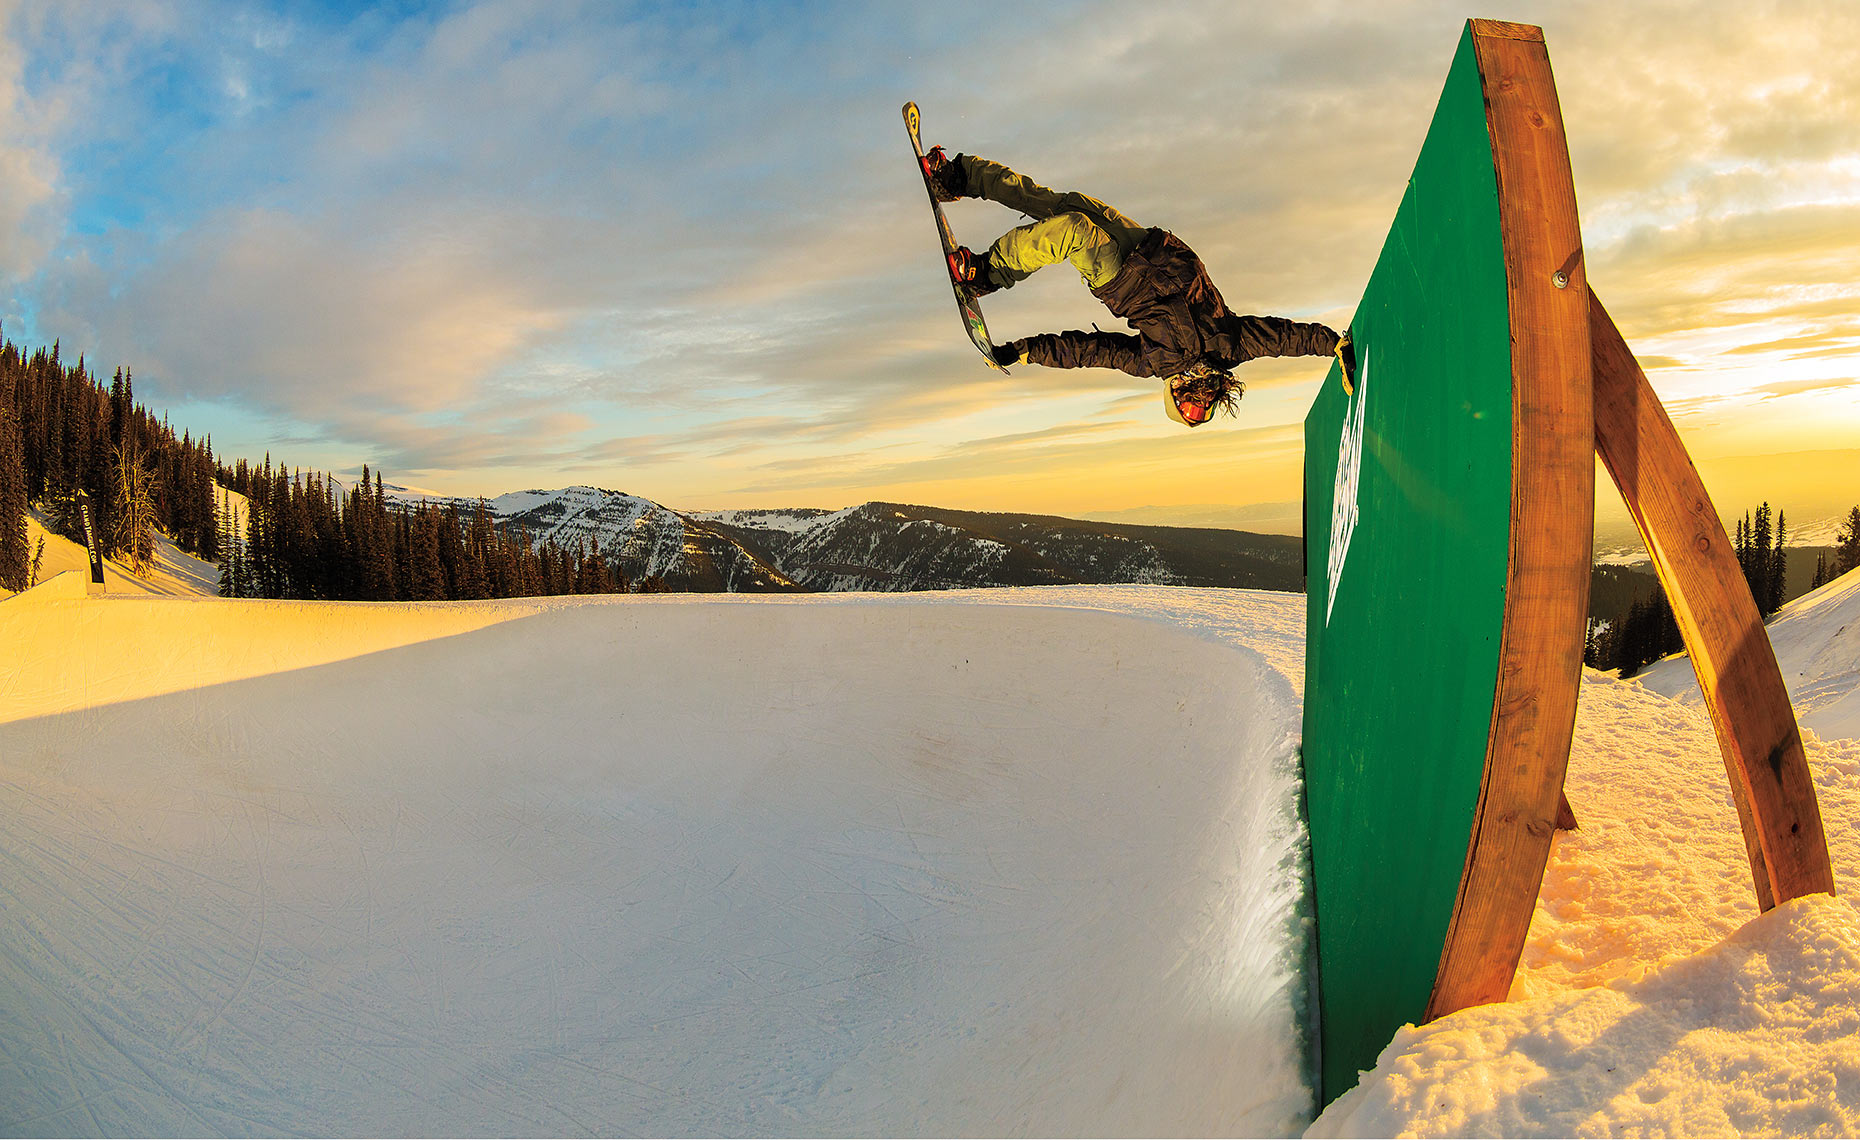 Snowboarding_Danny_Davis_Peace_Park_Grand_Targee_Wyoming_Chris_Wellhausen_01